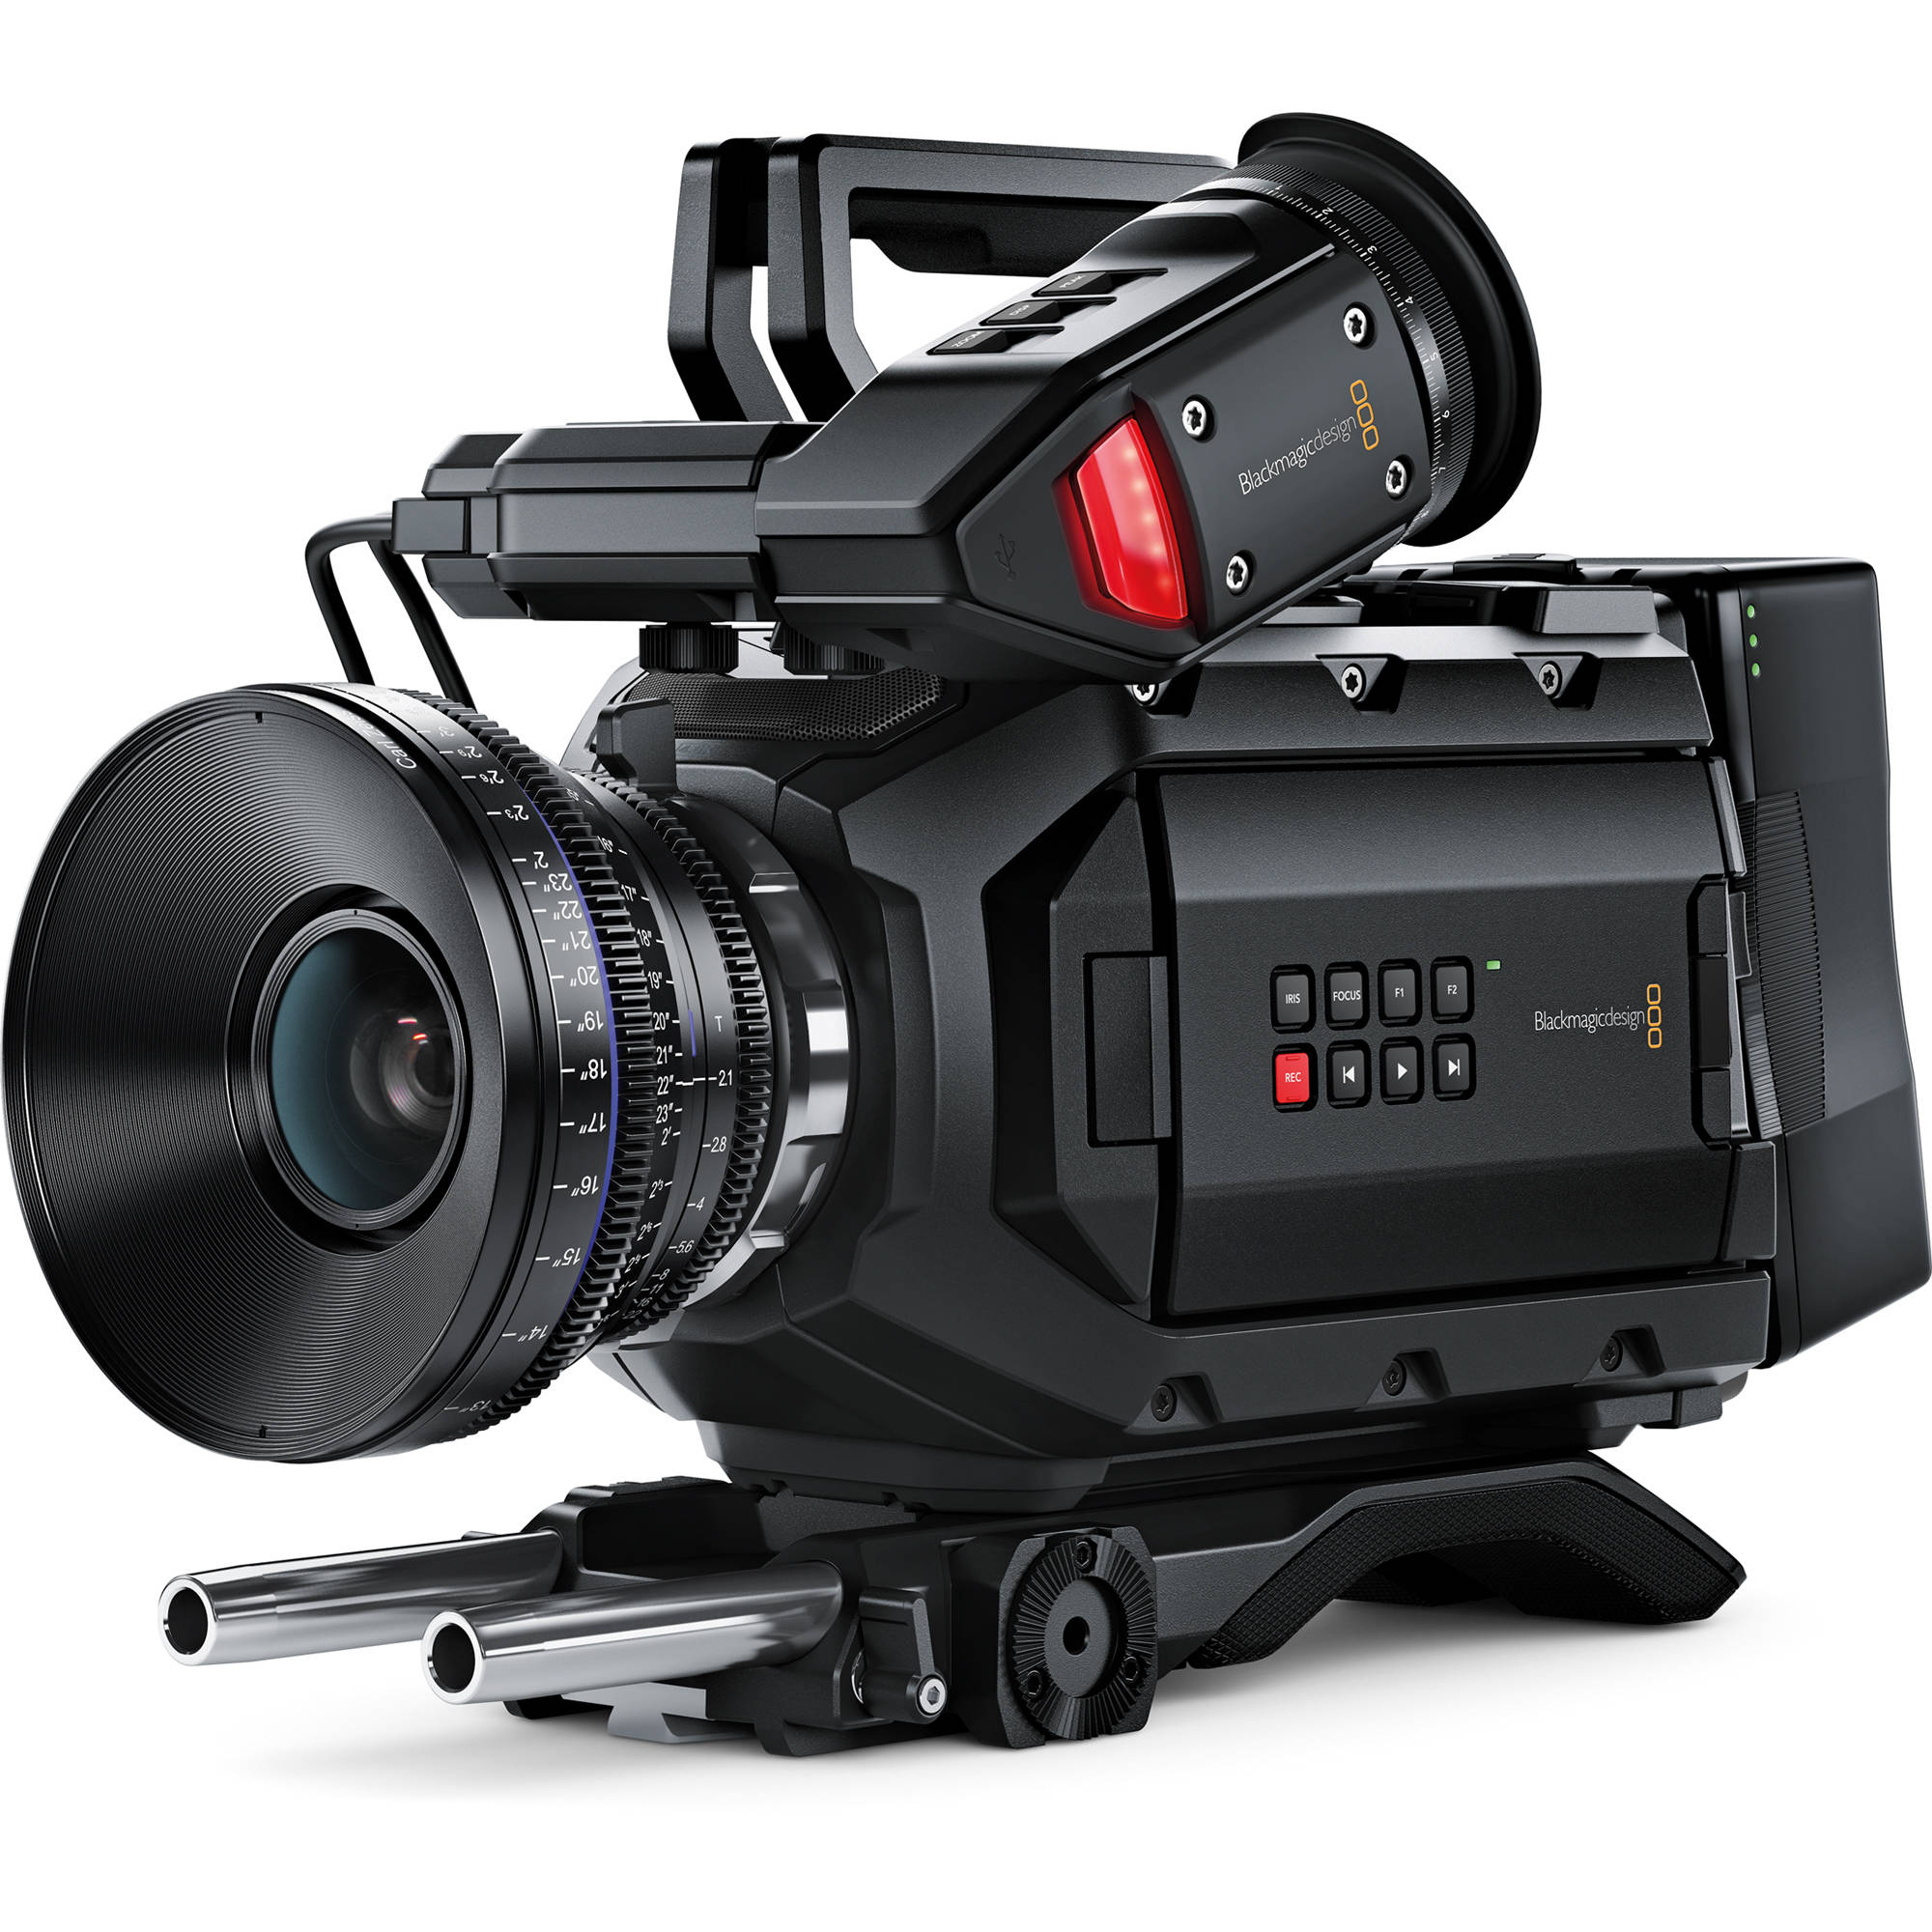 BlackMagic URSA EF Camera Driver Windows 7